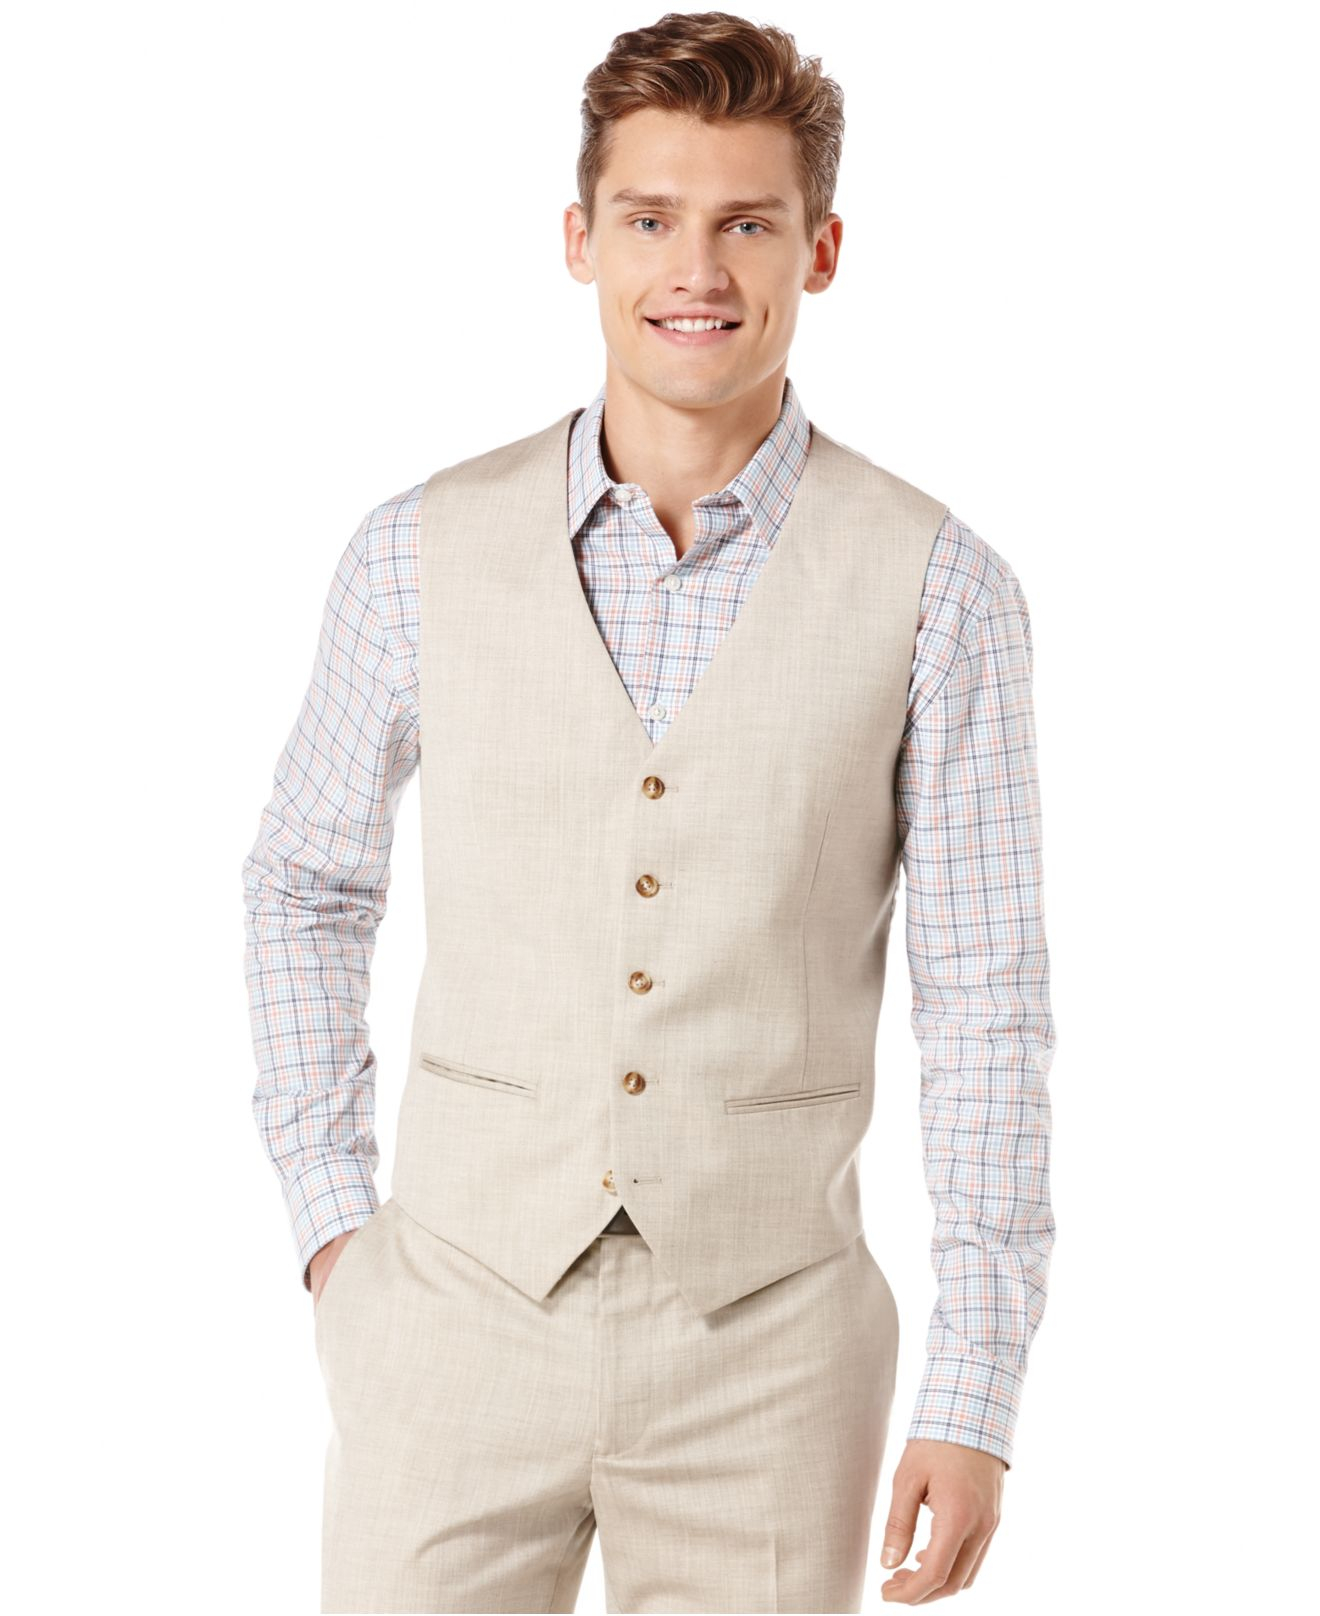 This is the Perfect Vest 3 Piece Set to wear to a Wedding, Prom, Winter Formal, Work Function, Formal Event, Restaurant Waiter, Casino Dealer, Valet Parking, Halloween Outfit or any other Special Occa.